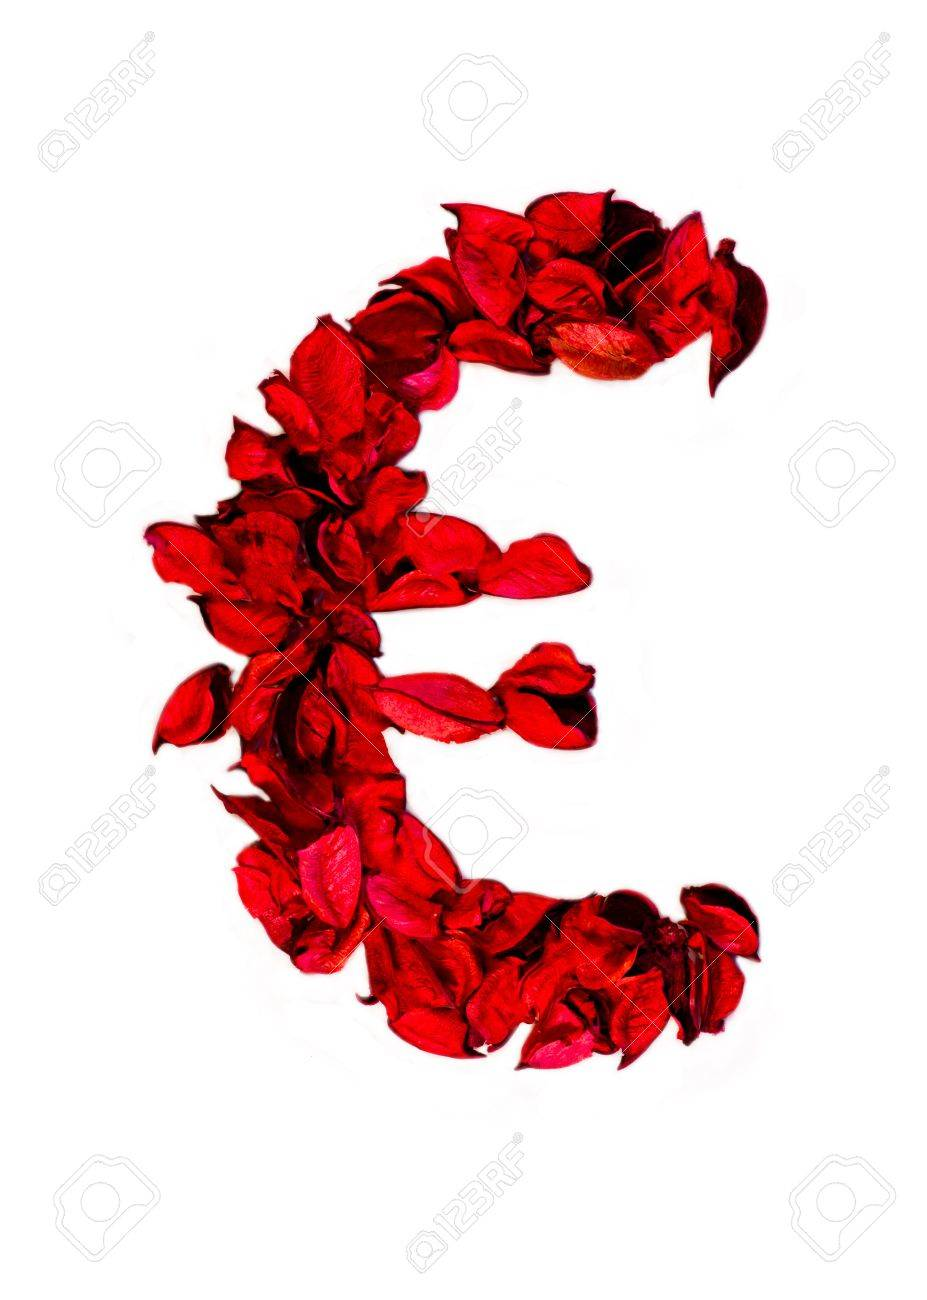 euro sign made with flower petals Stock Photo - 16726443